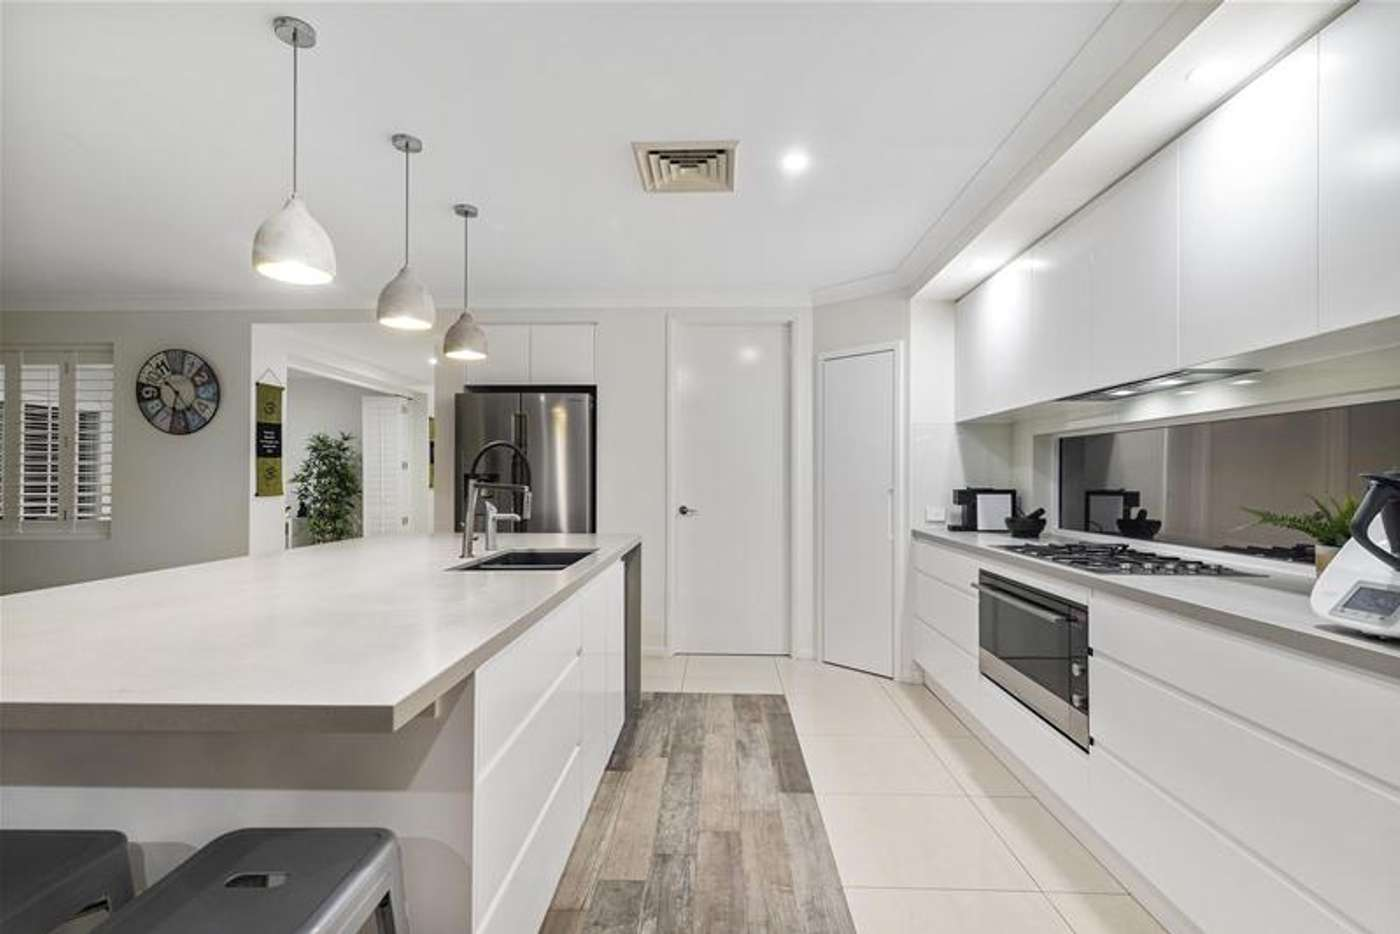 Fifth view of Homely house listing, 23 Twelfth Avenue, Palm Beach QLD 4221